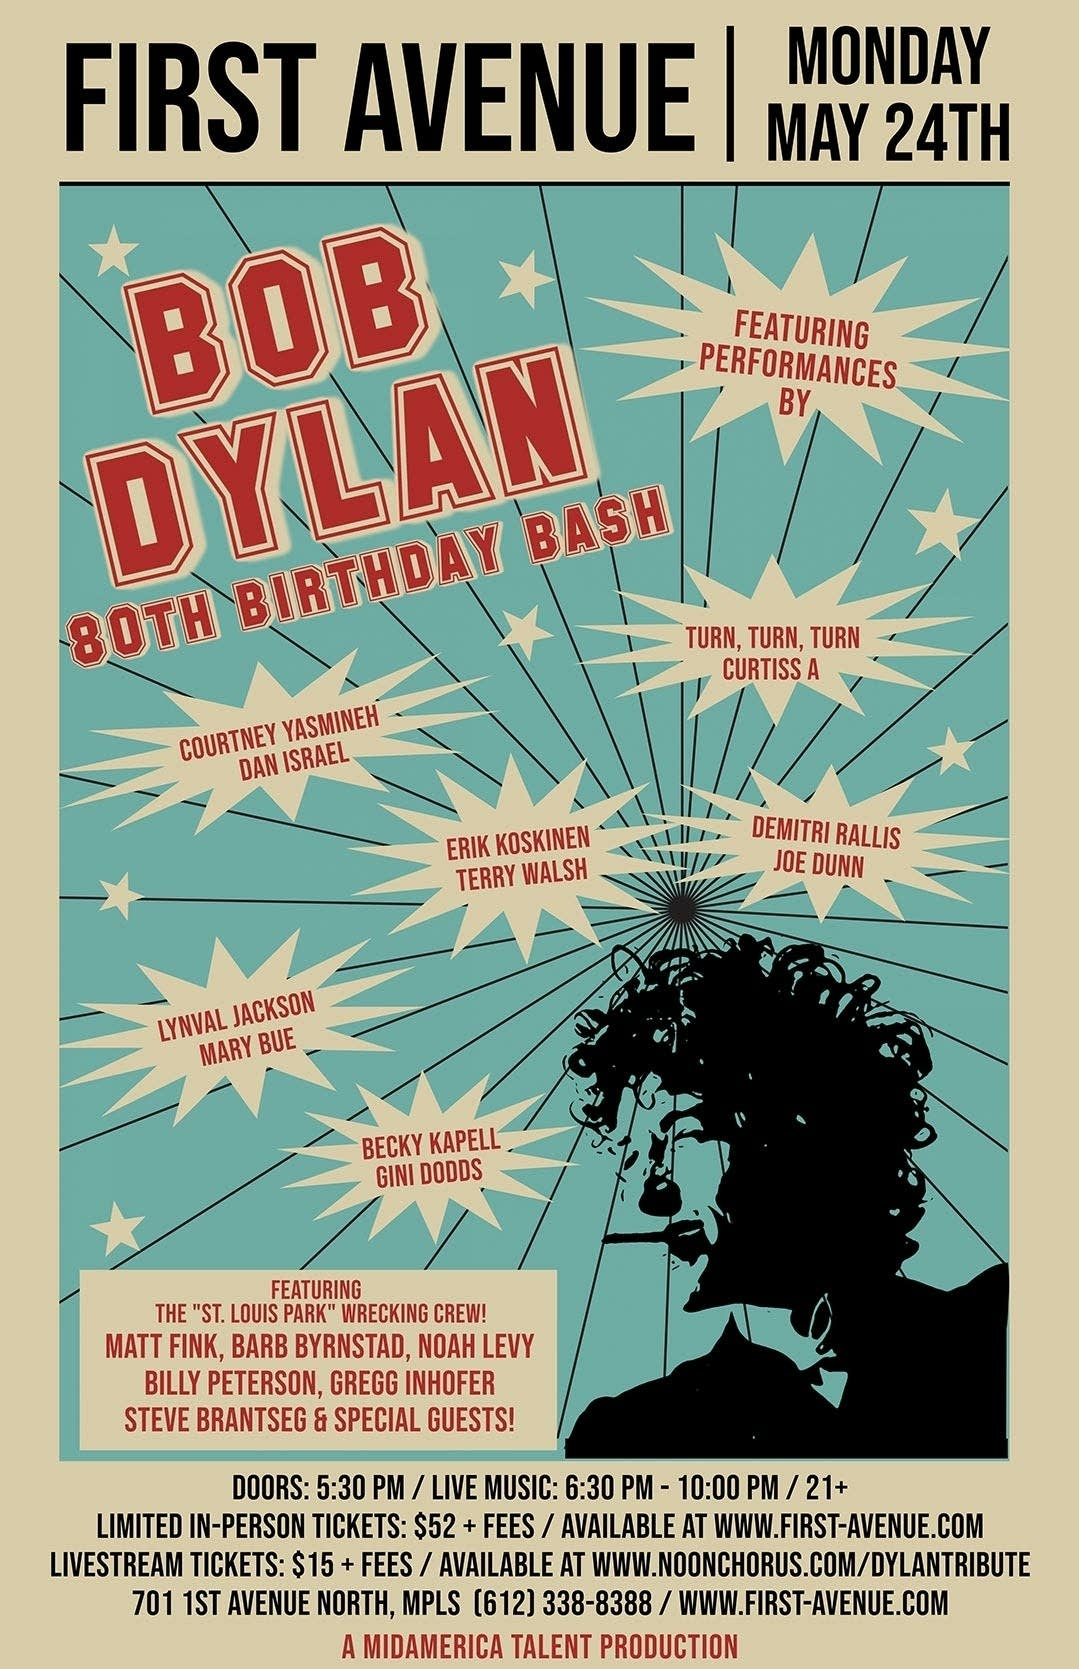 Bob Dylan 80th Anniversary Birthday Bash Tribute